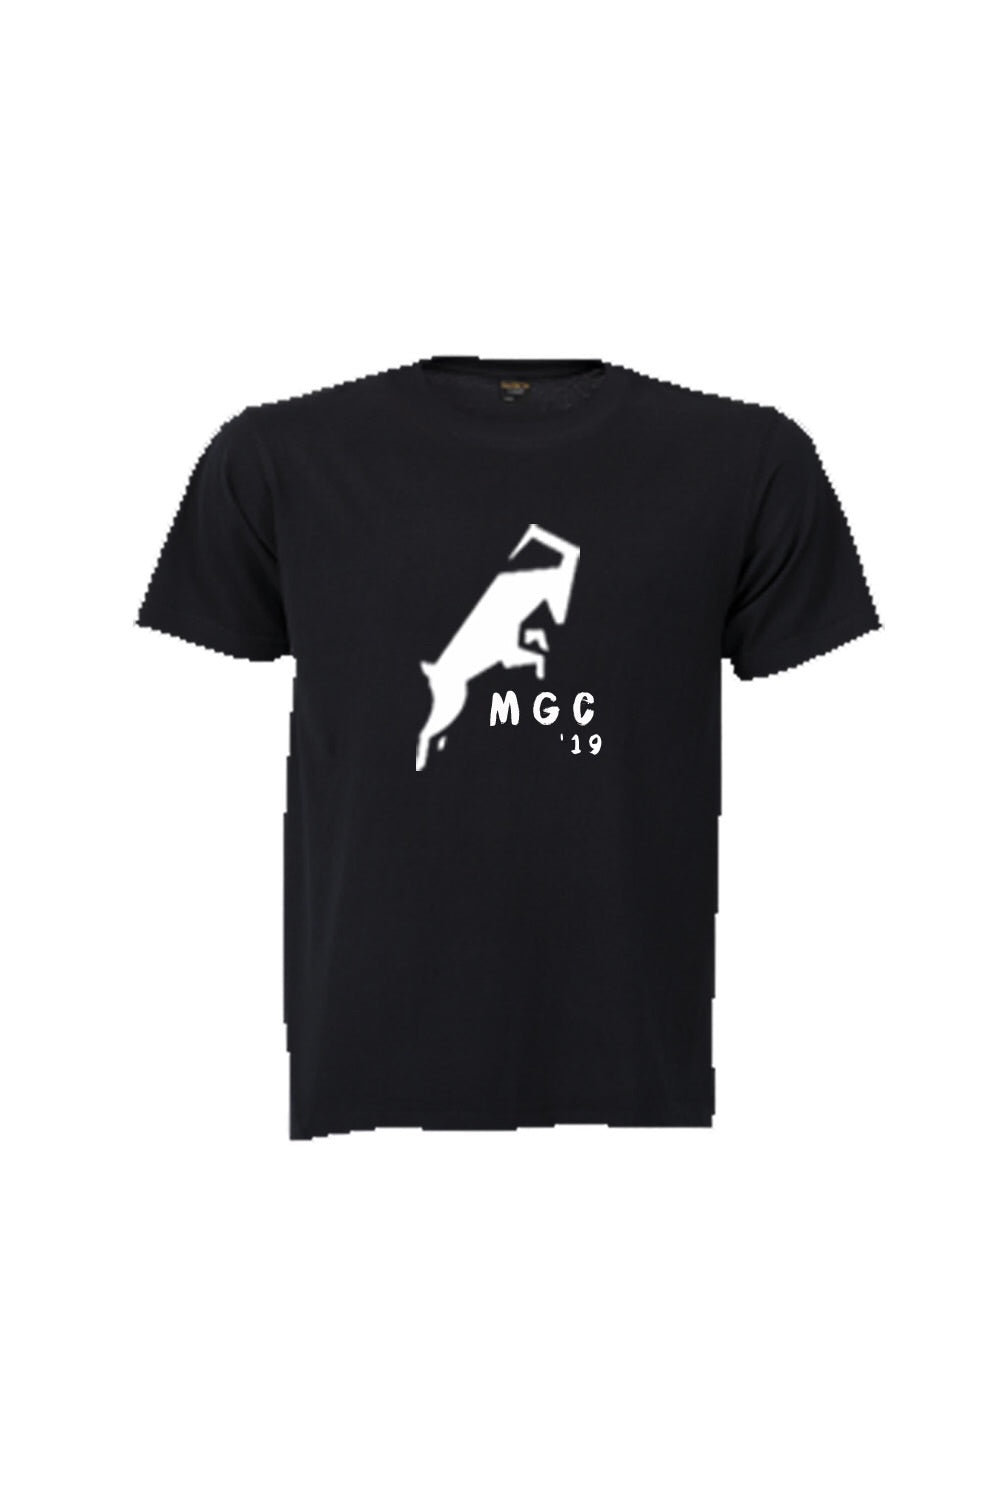 Ellipsis - Mountain Goat Black Tee